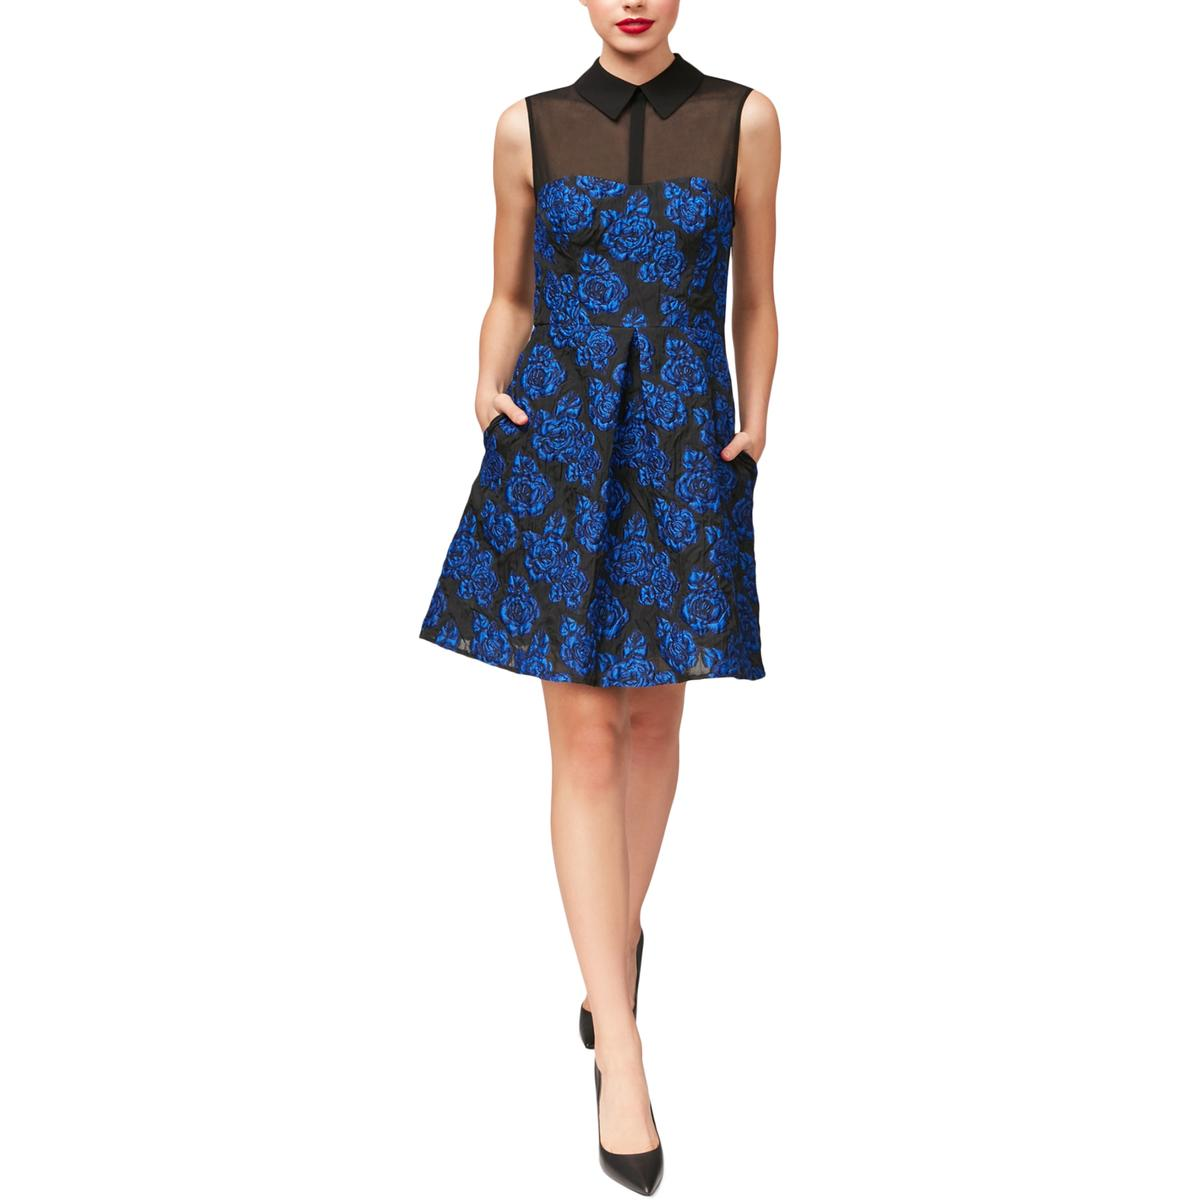 23e25a612ea Details about Betsey Johnson Womens Black Sleeveless Mini Floral Print  Party Dress 4 BHFO 3208